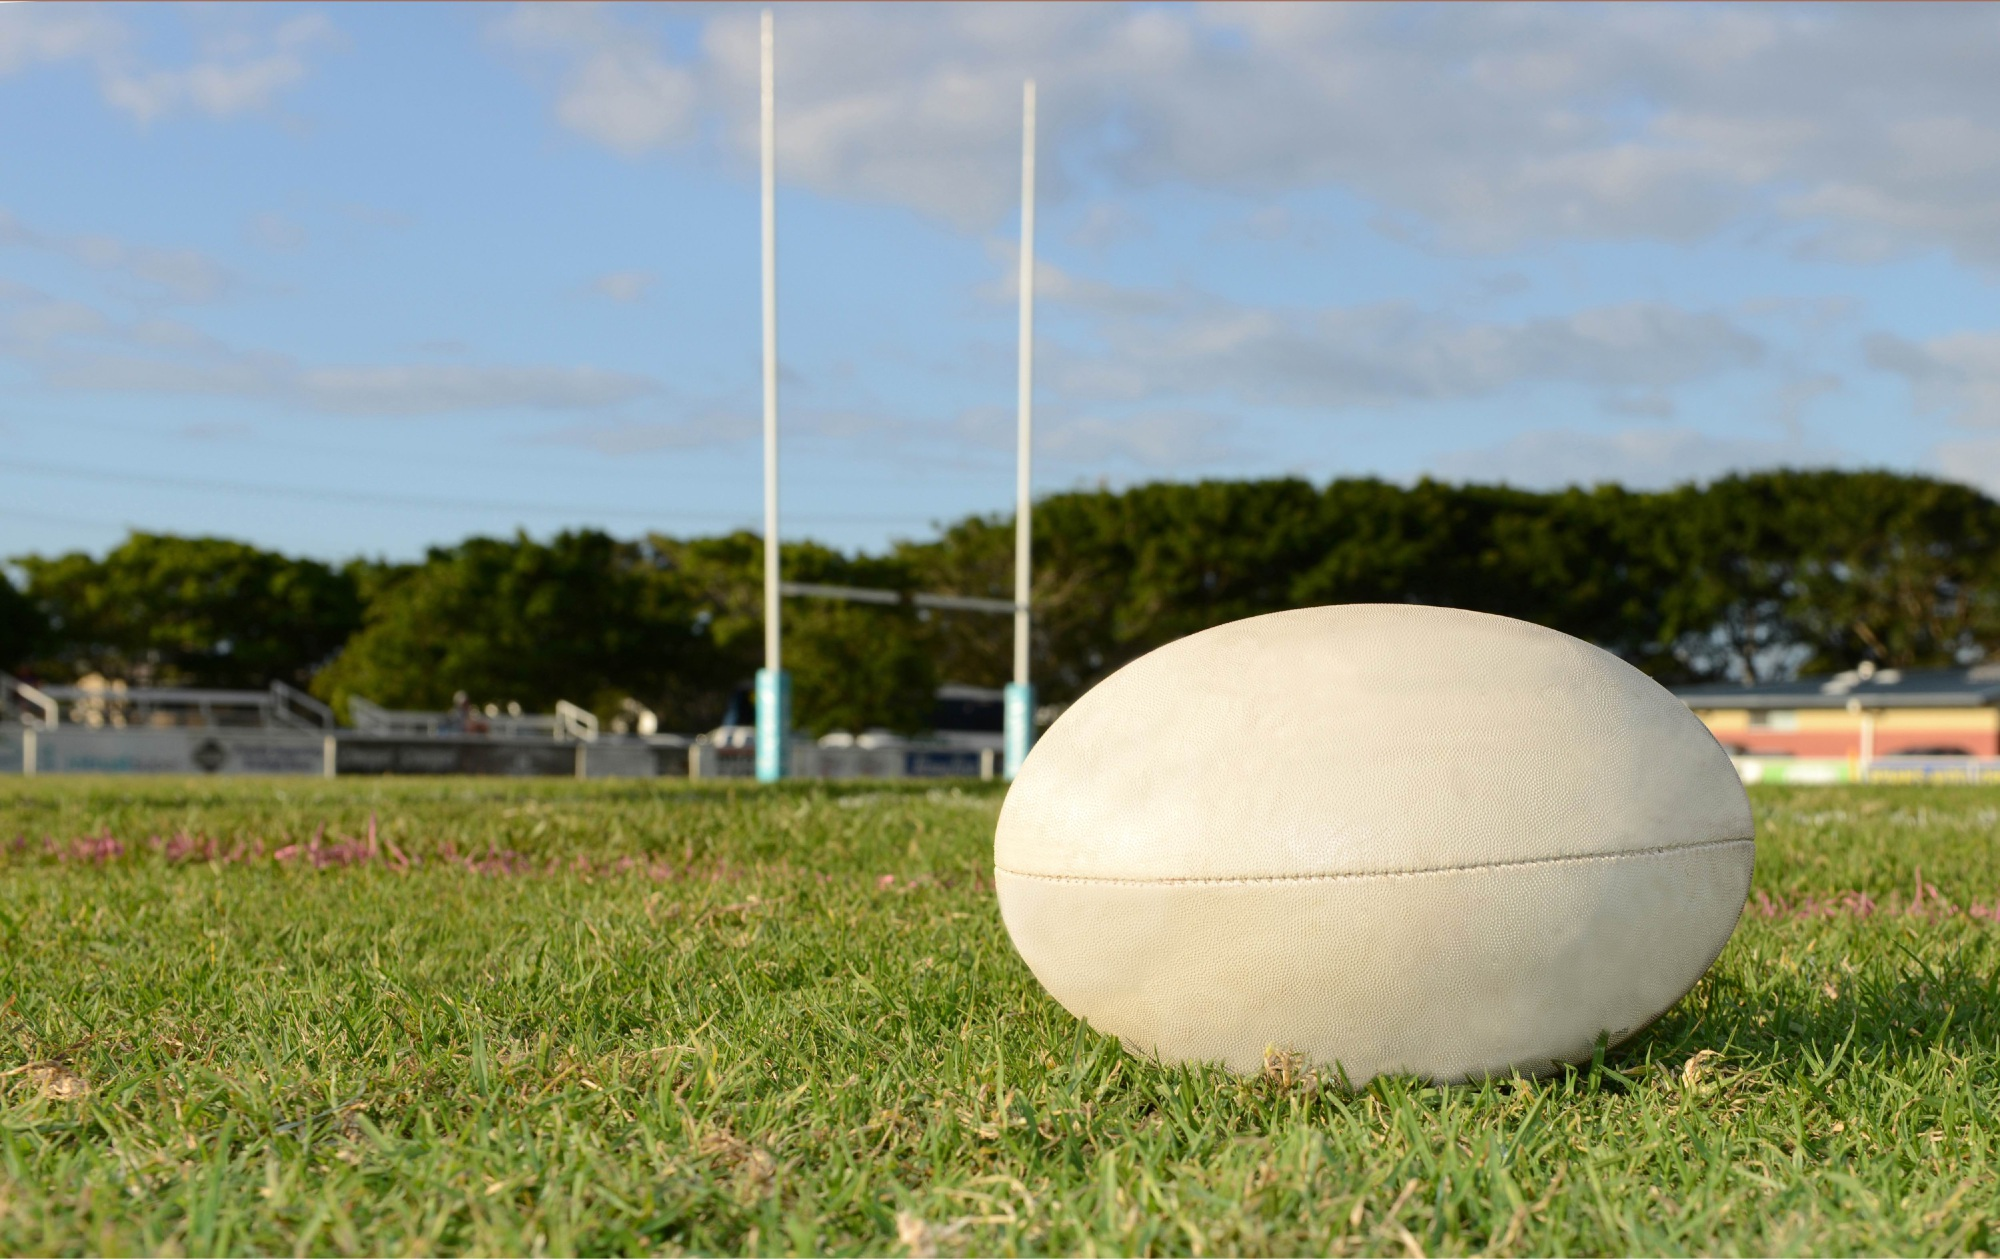 Rugby Union: Palmyra makes light work of Associates, winning 45-18